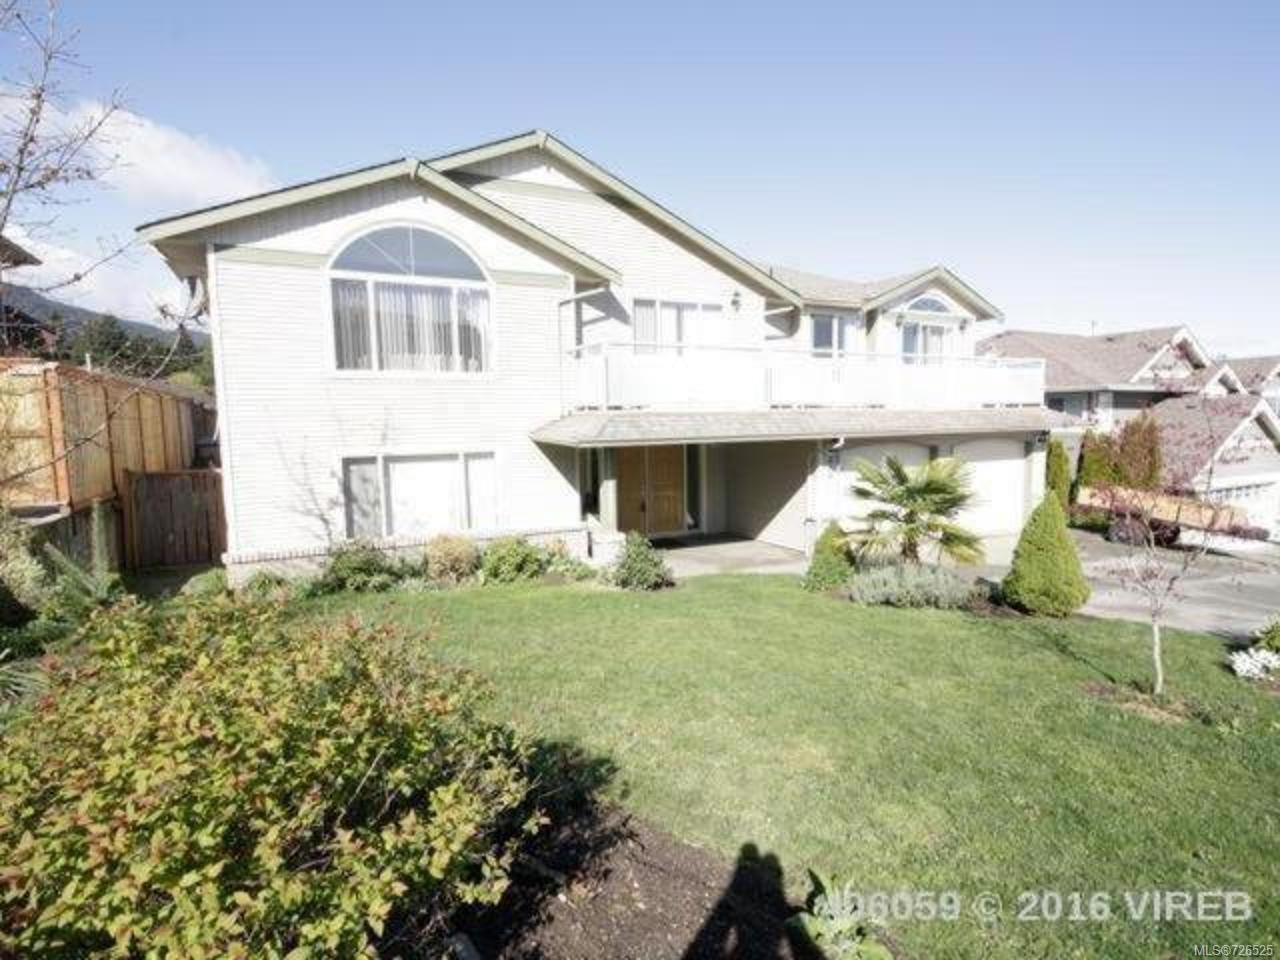 Photo 10: Photos: 355 Weaver Rd in NANAIMO: Na University District House for sale (Nanaimo)  : MLS®# 726525